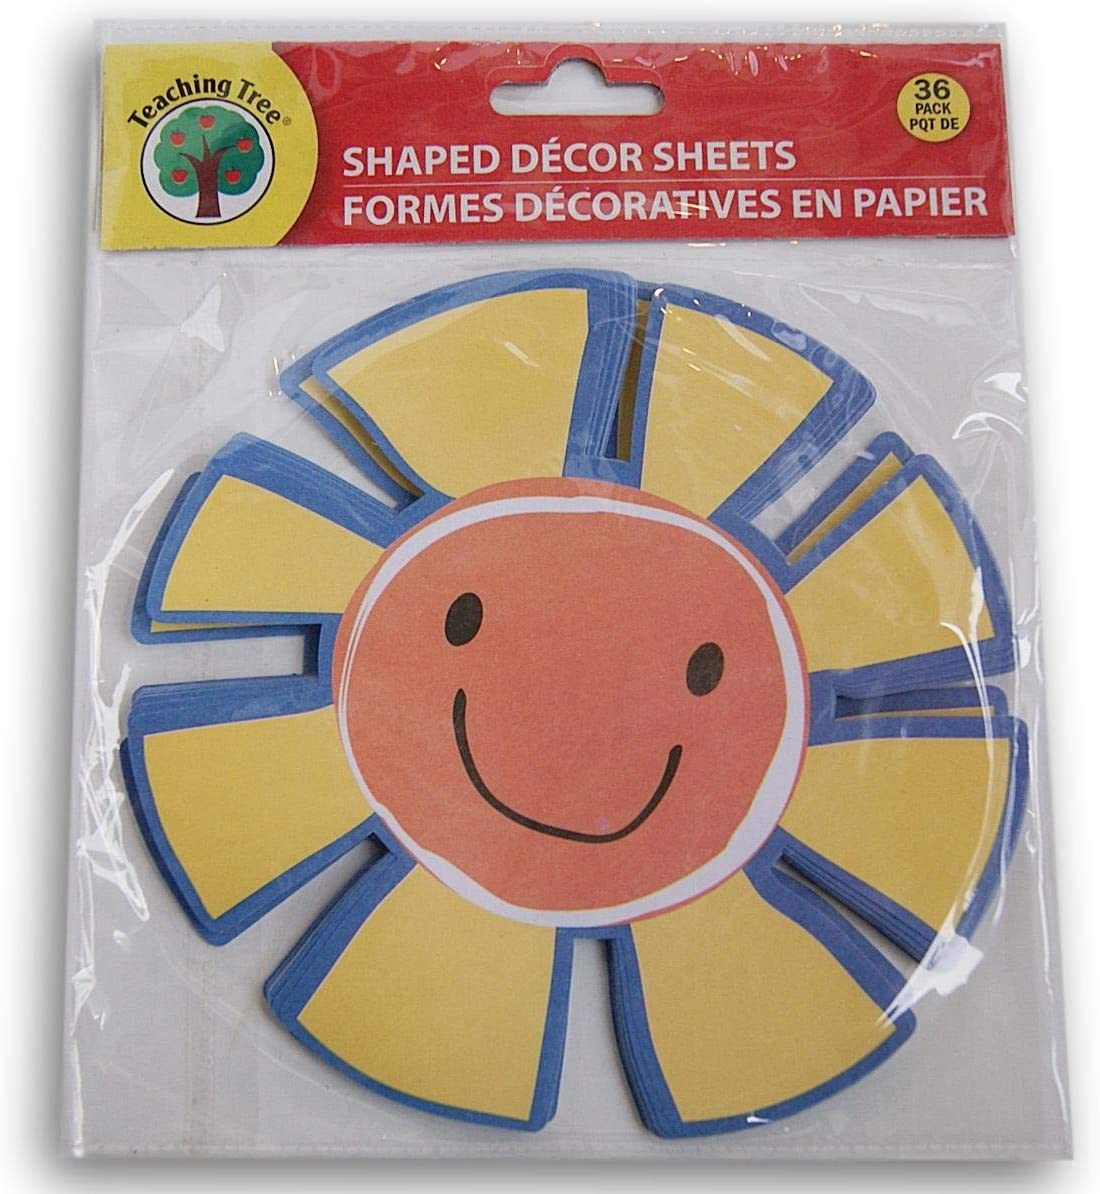 Teaching Jacksonville Mall Tree Paper Fort Worth Mall Shaped Decor Sheets Smiling - Sun Count 36